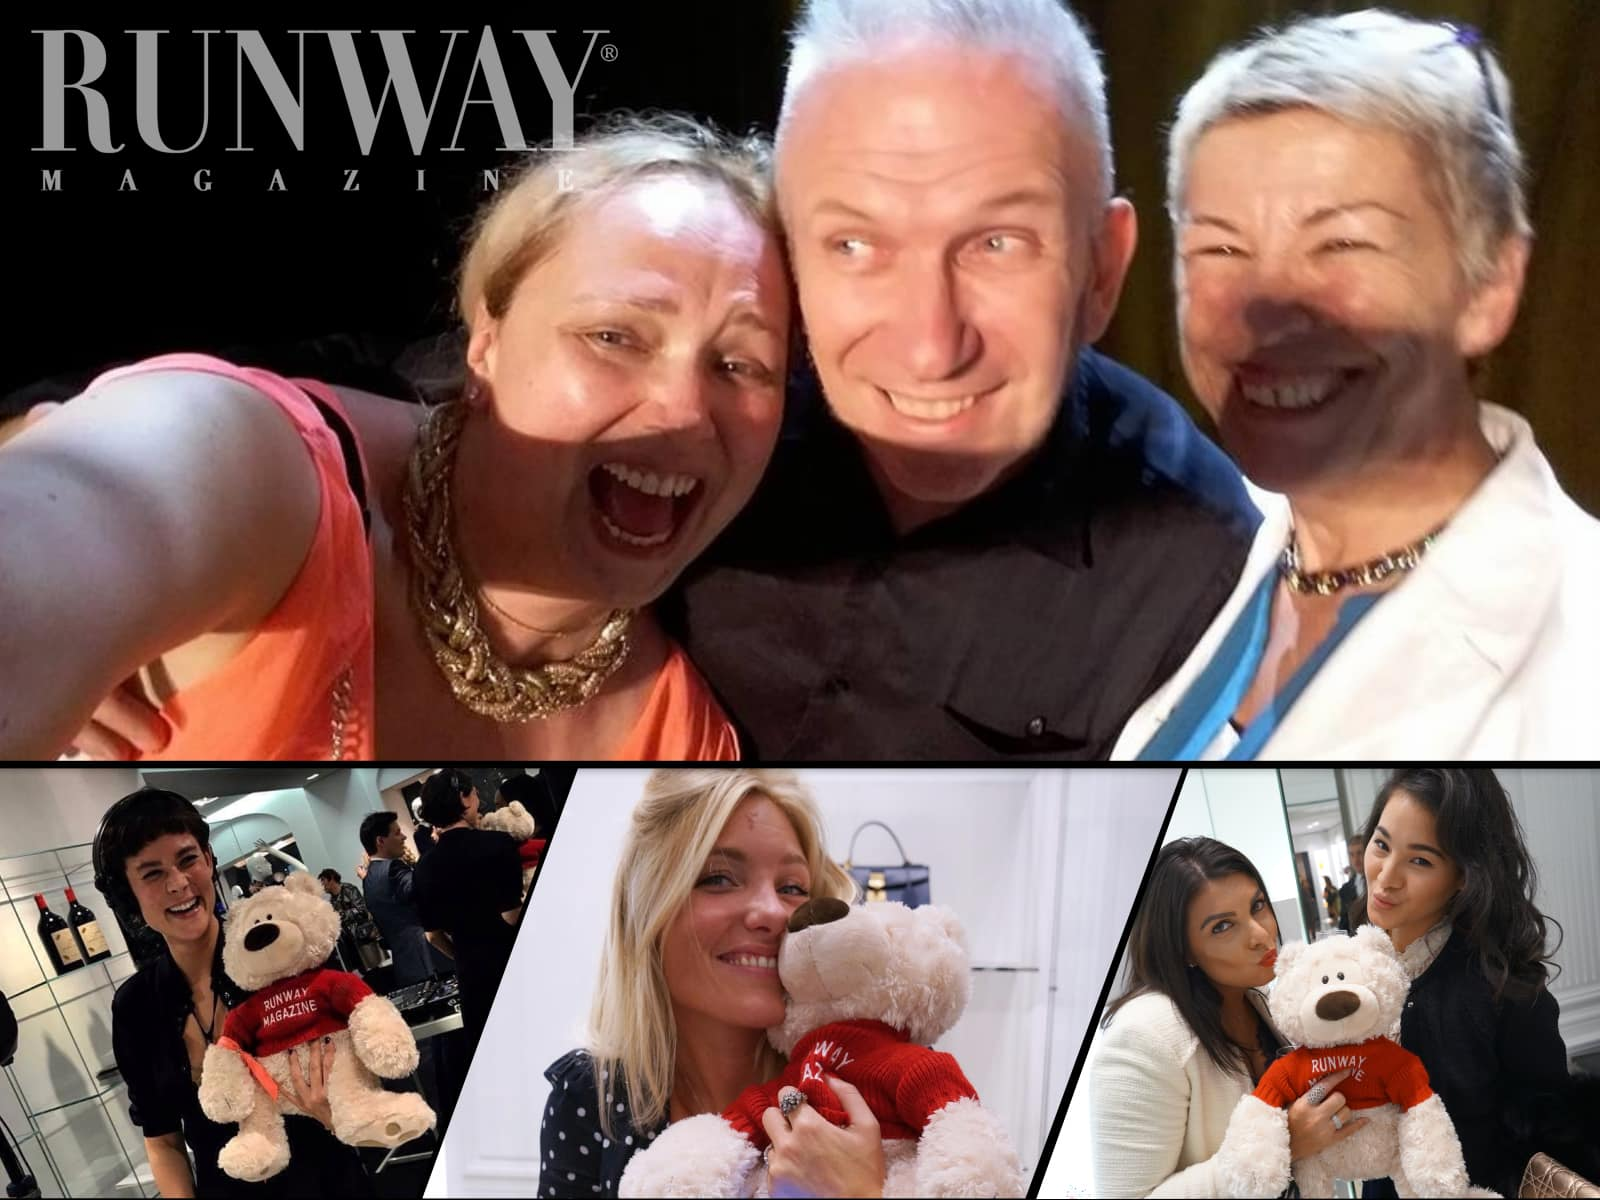 Runway-Magazine-Teddy-Runway-Party-Chayan-Khoi-Paris